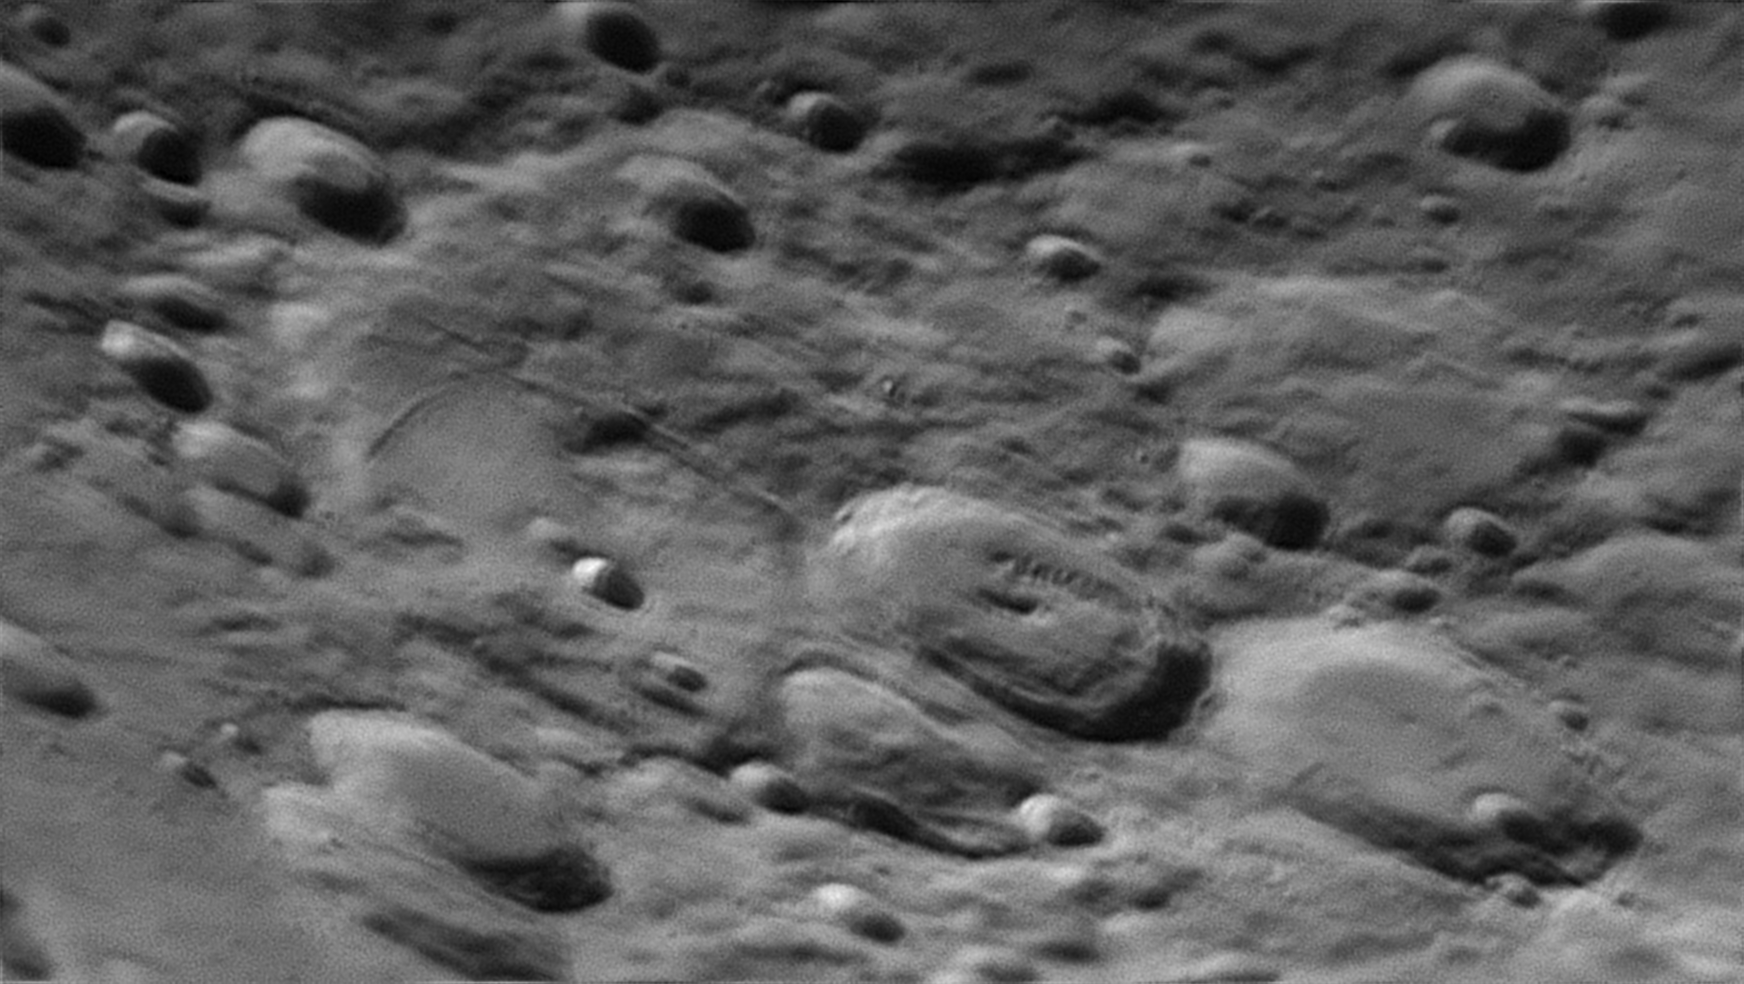 2021-02-17-2012_4-IR-Moon_lapl5_ap555_AS_fabricius.png.5a26328e6cc78f82b37d3ea36430a57c.png